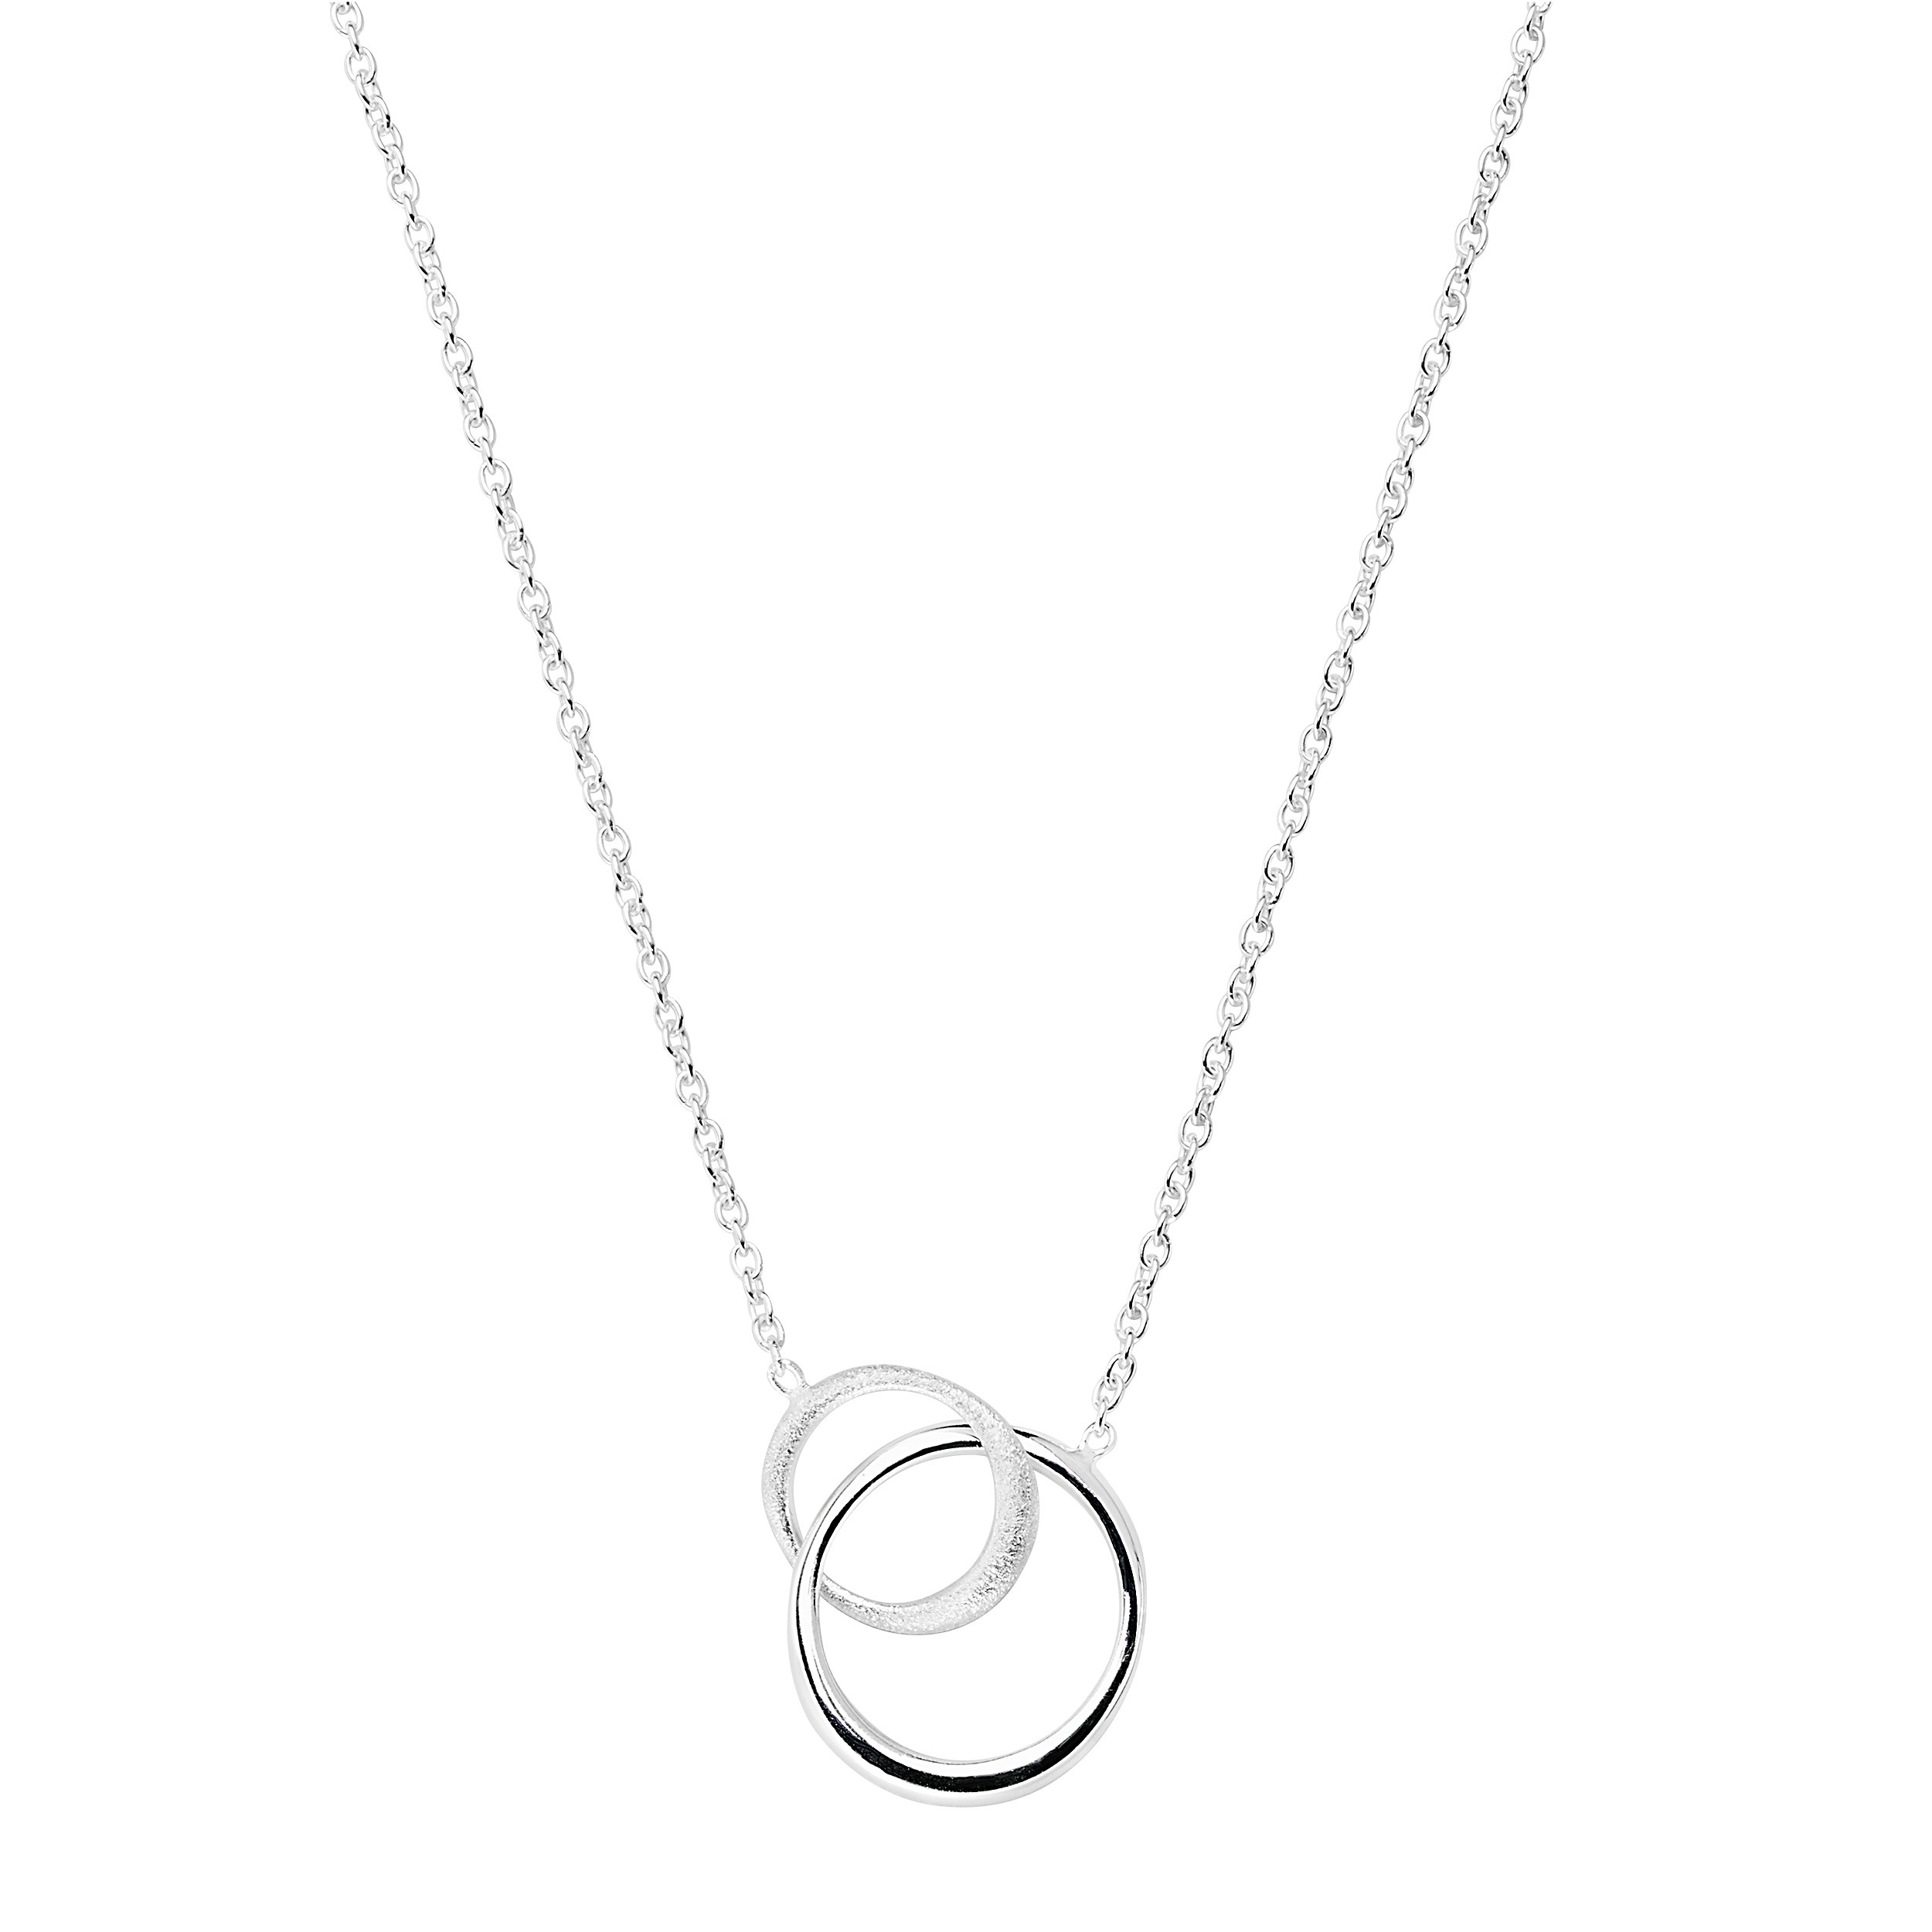 Les Amis single necklace 1490 SEK